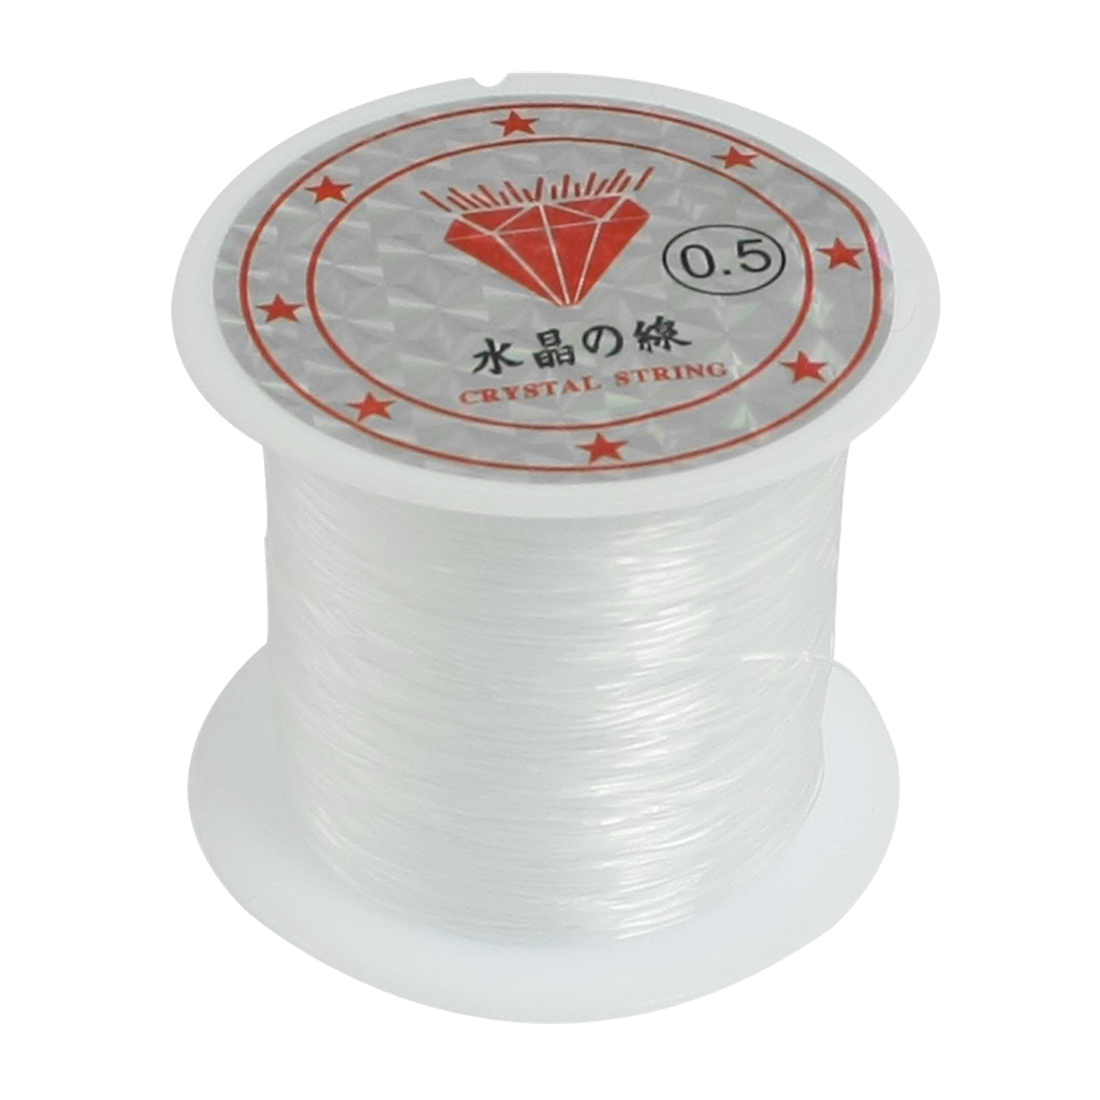 41Lbs Capacity 0.5mm Diameter Clear Nylon Fishing Line Cord Spool